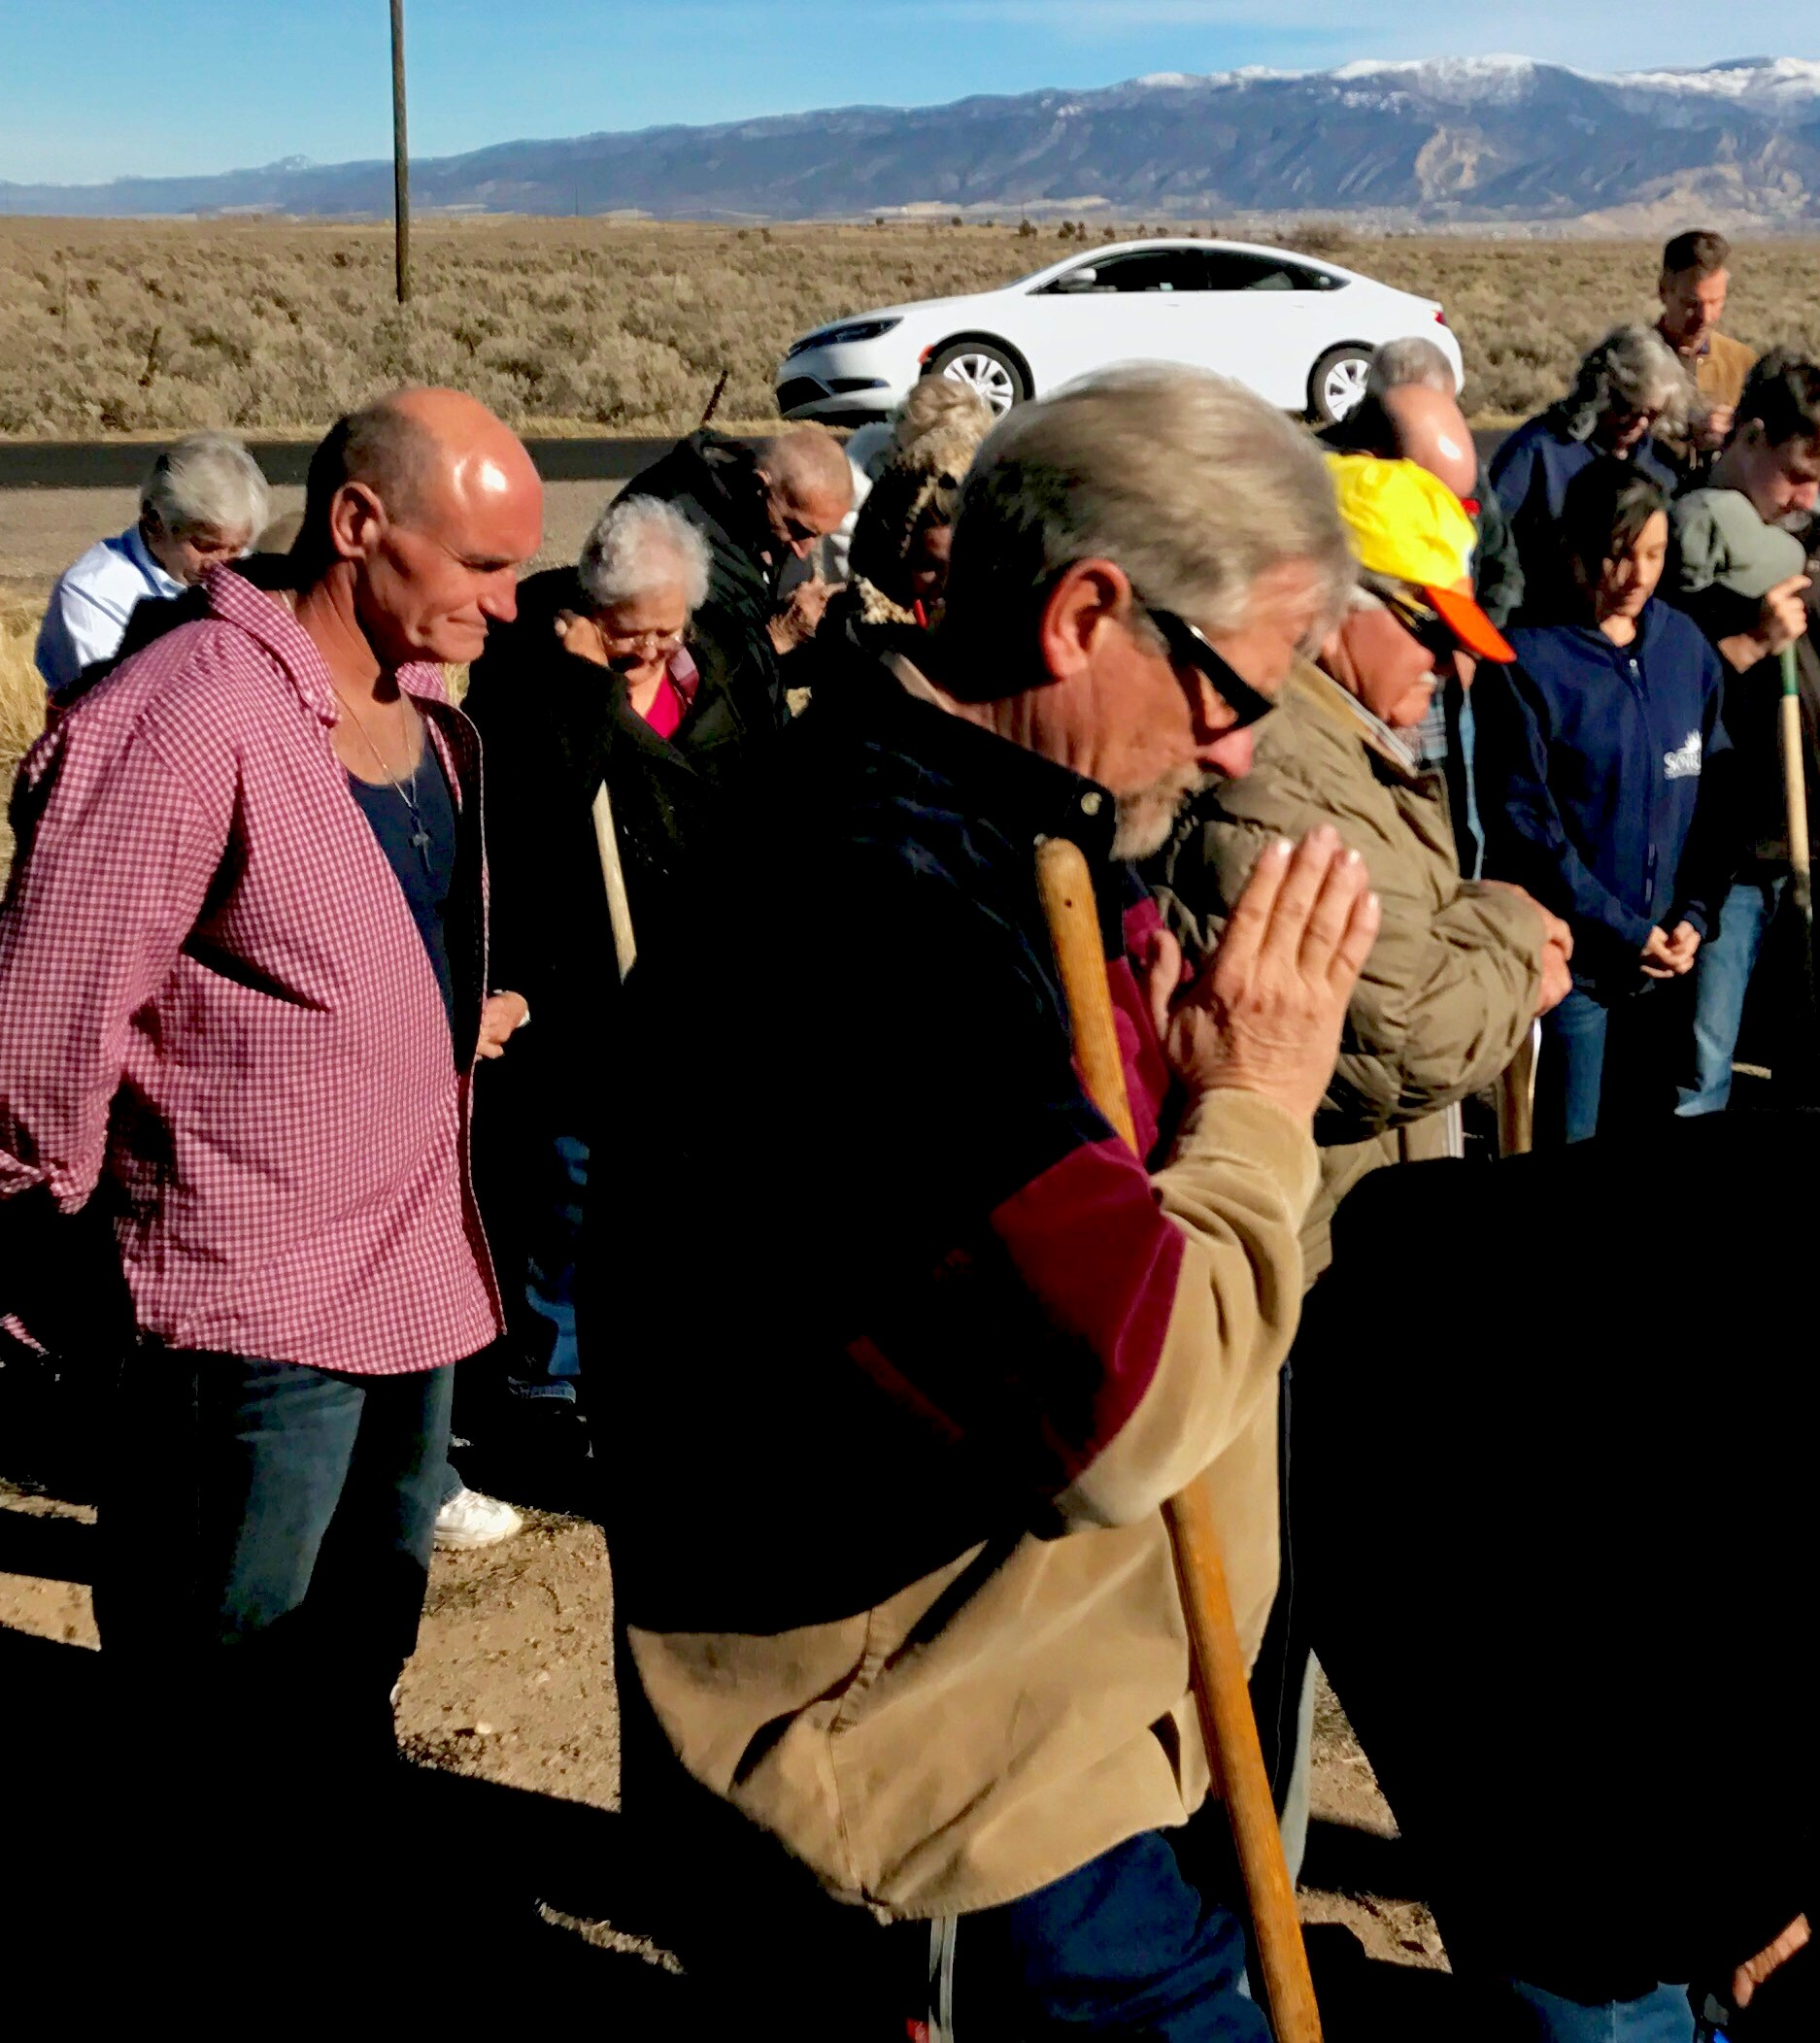 Church members pray as Pastor Jim Vasquez dedicates the property where the new Sonrise Fellowship Church will be built. Iron County, Utah, Dec. 4, 2016 | Photo by Tracie Sullivan, St. George News / Cedar City News